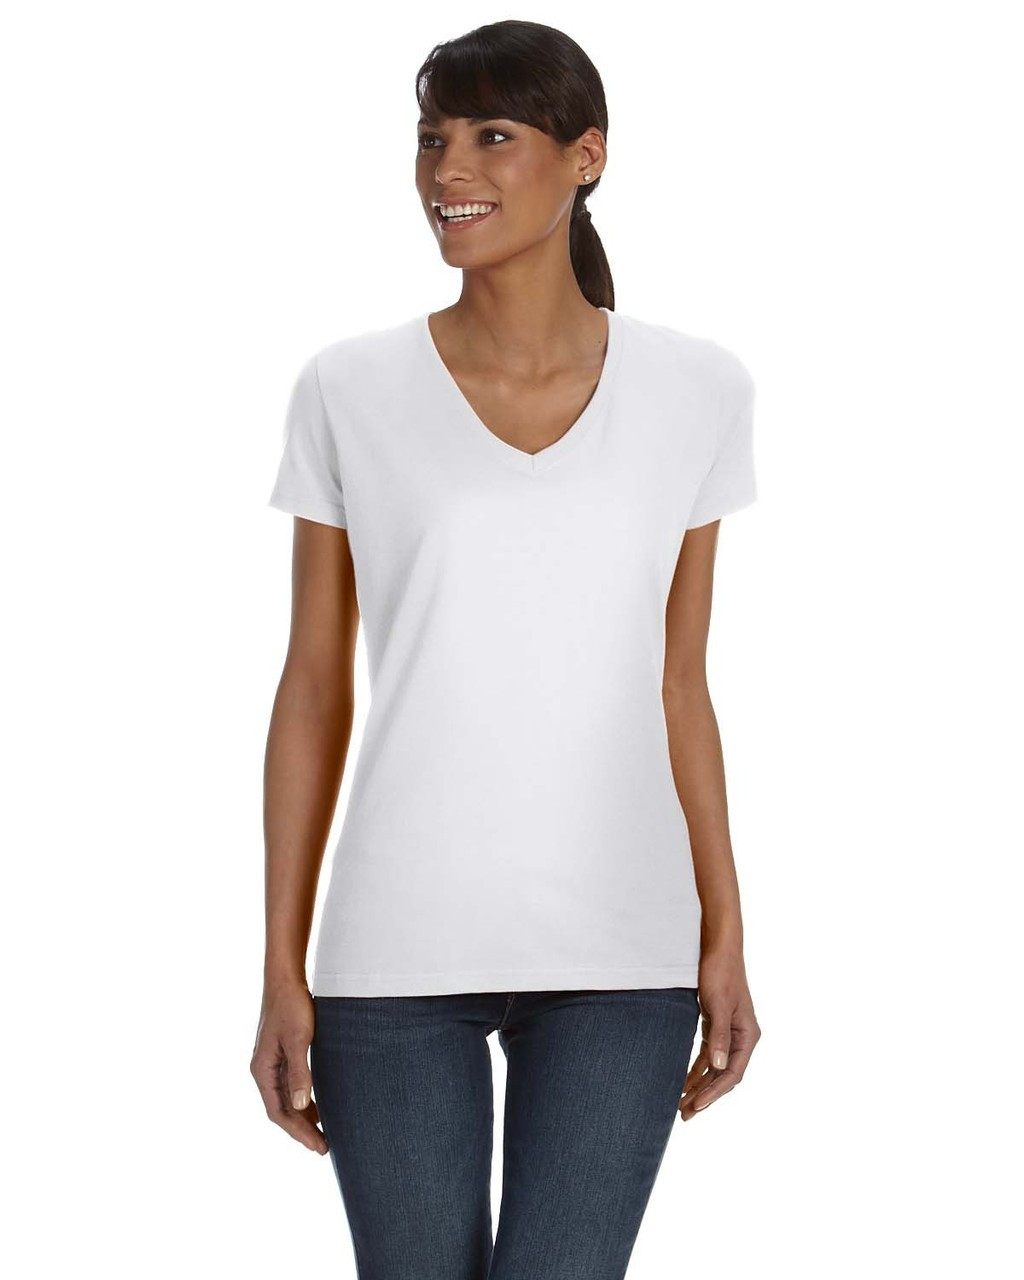 White L39VR Fruit of the Loom Ladies' 100% Heavy Cotton HD® V-Neck T-Shirt   Blankclothing.ca